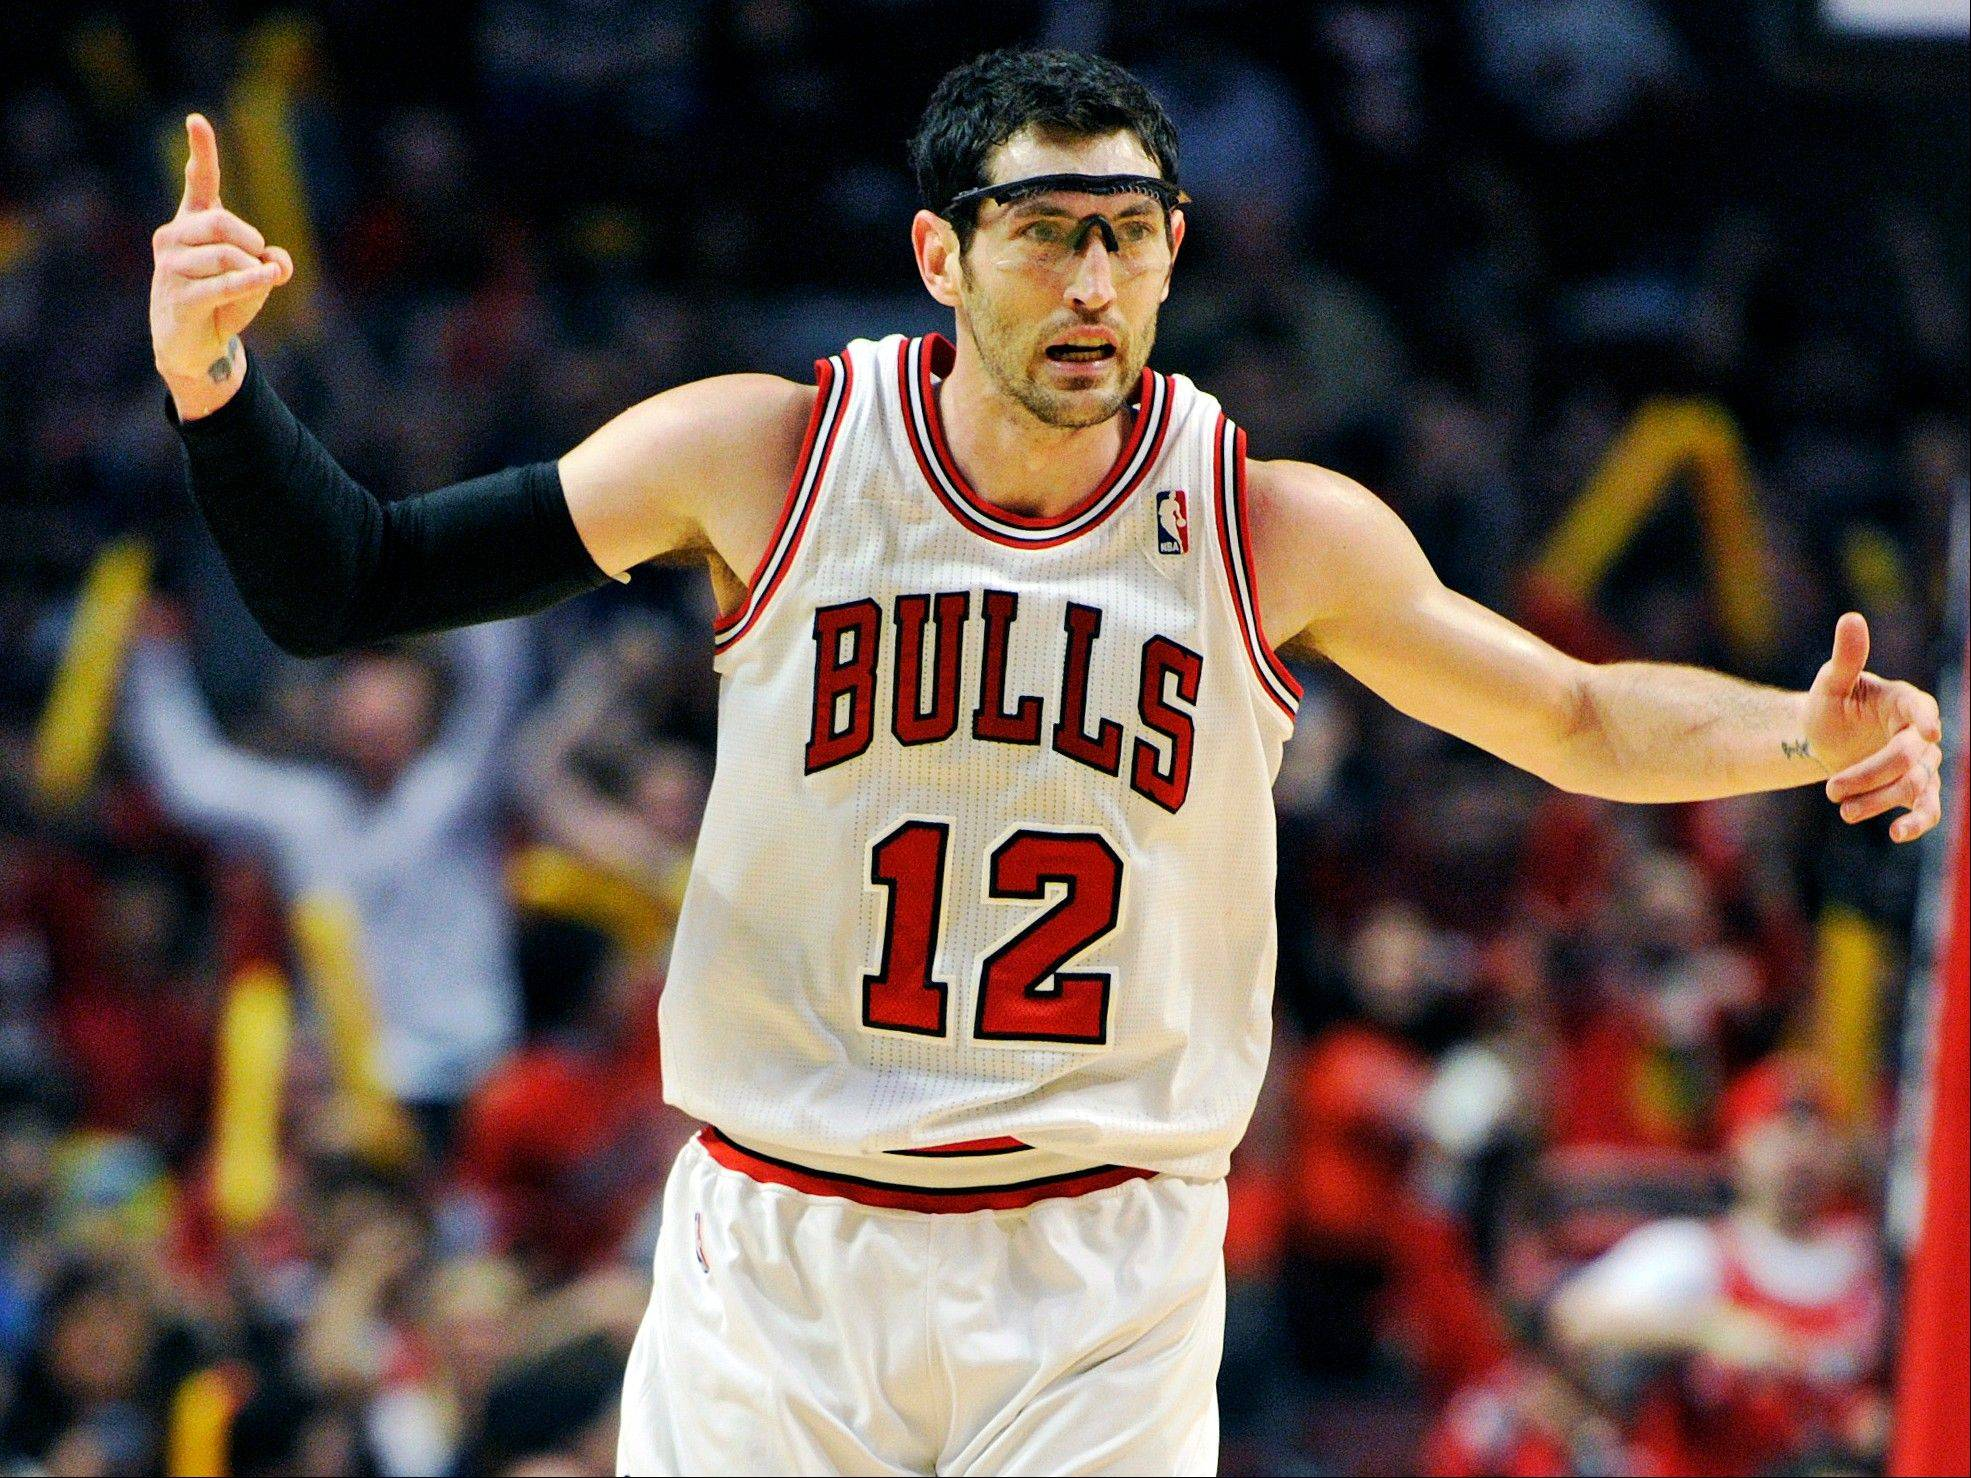 Chicago Bulls' Kirk Hinrich (12) celebrates a 3-point basket against the Brooklyn Nets during the first half in Game 4 of their first-round NBA basketball playoff series Saturday, April 27, 2013, in Chicago.